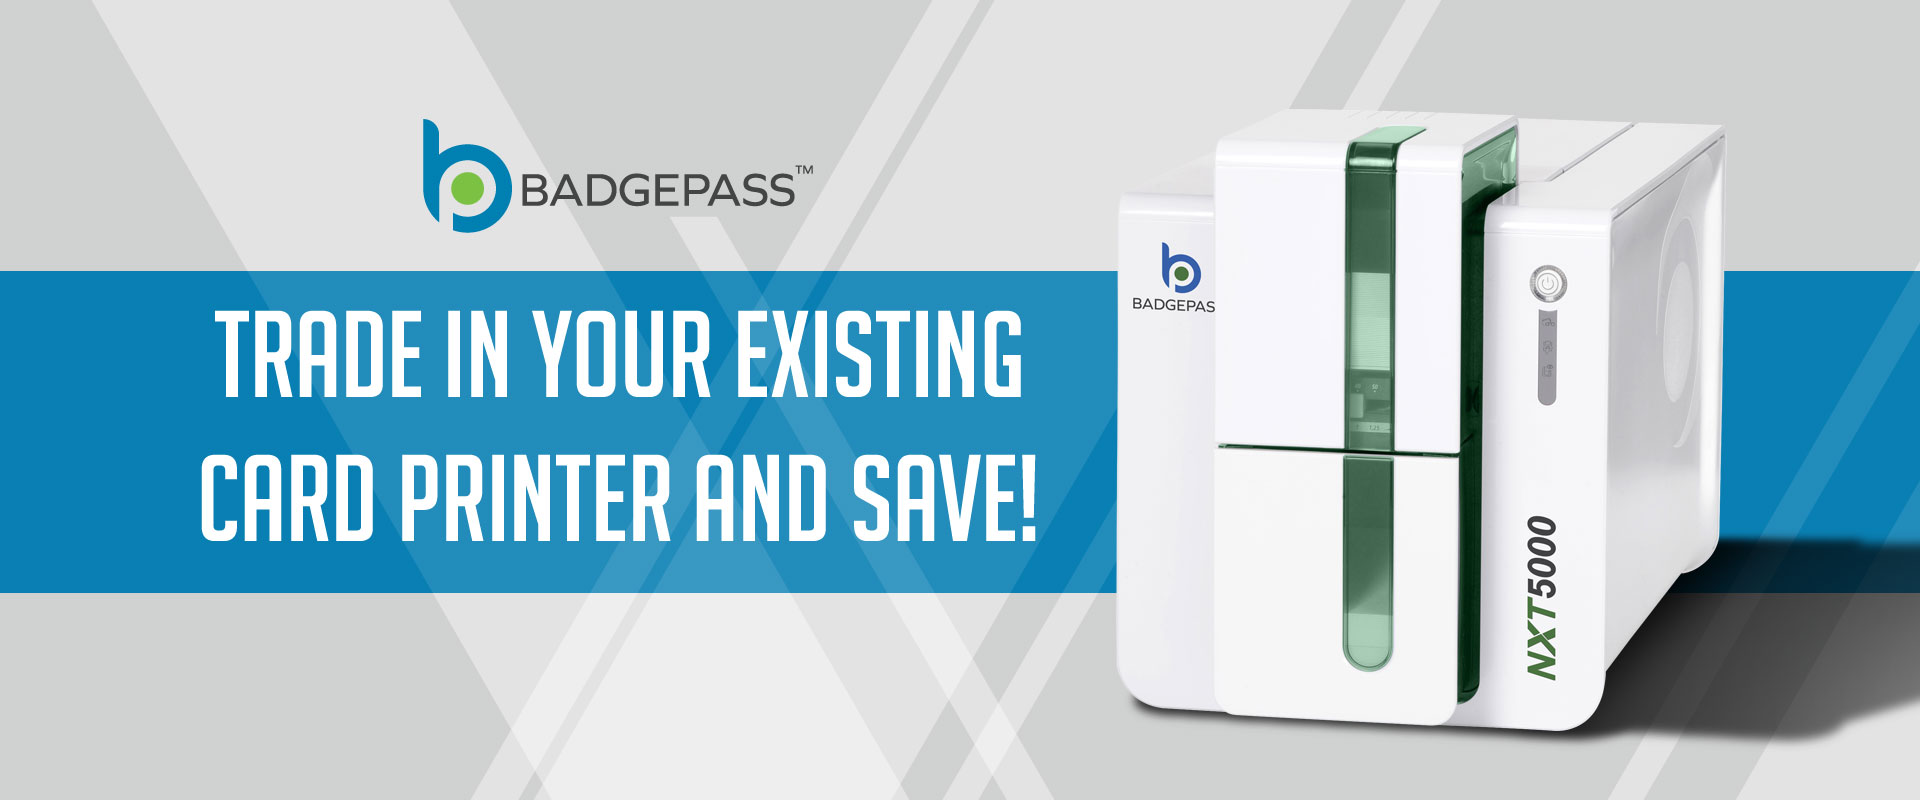 BadgePass Card Printer Promotion Banner Image